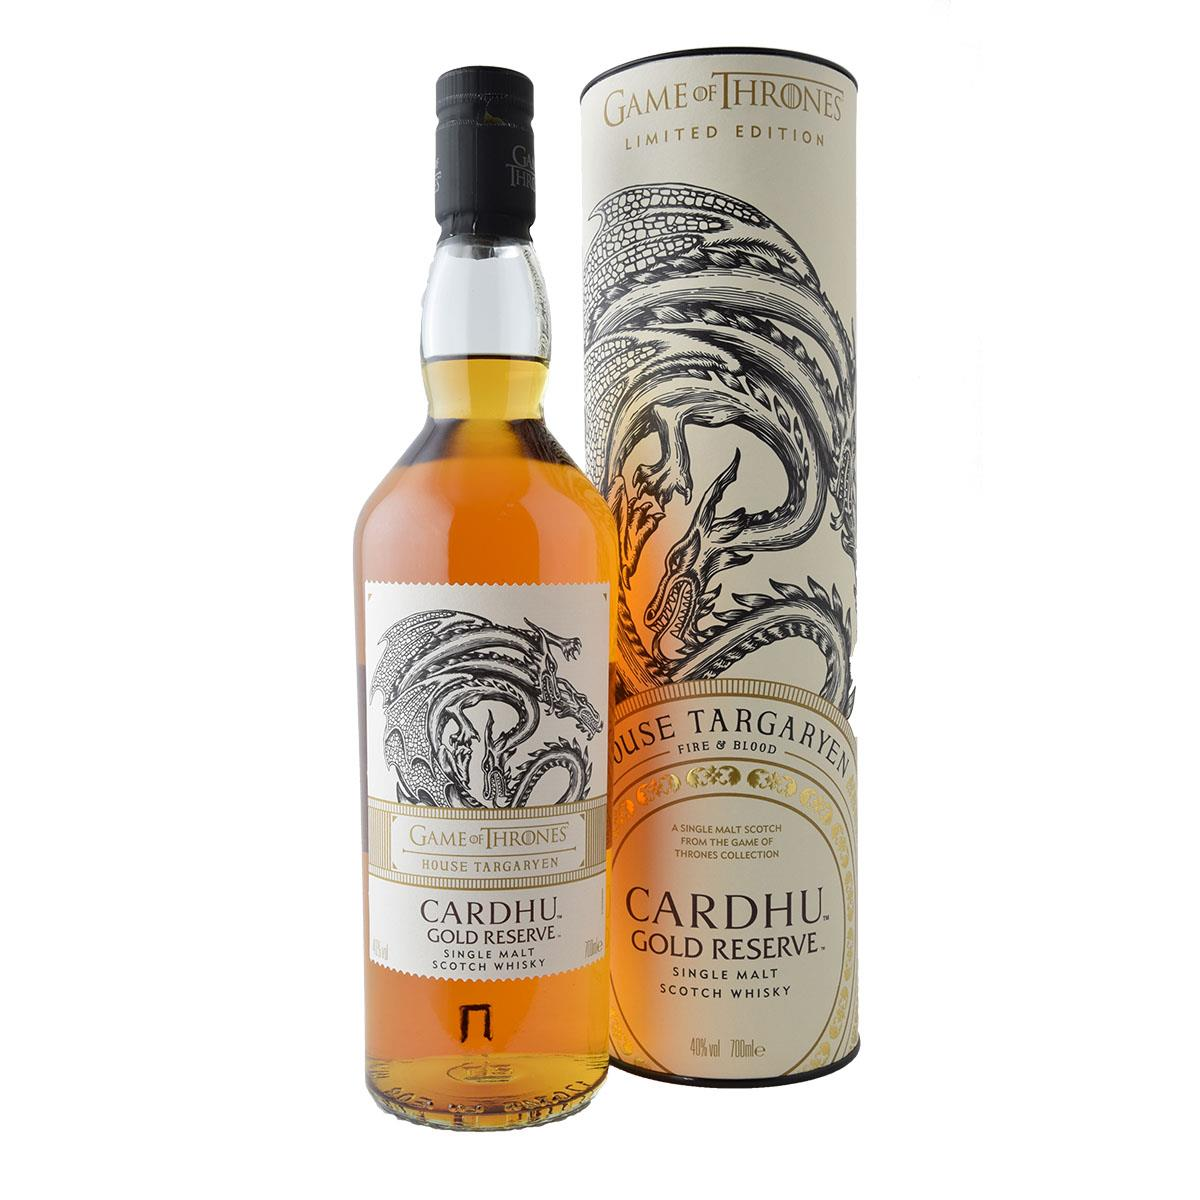 Cardhu Gold Reserve Game of Thrones 700ml